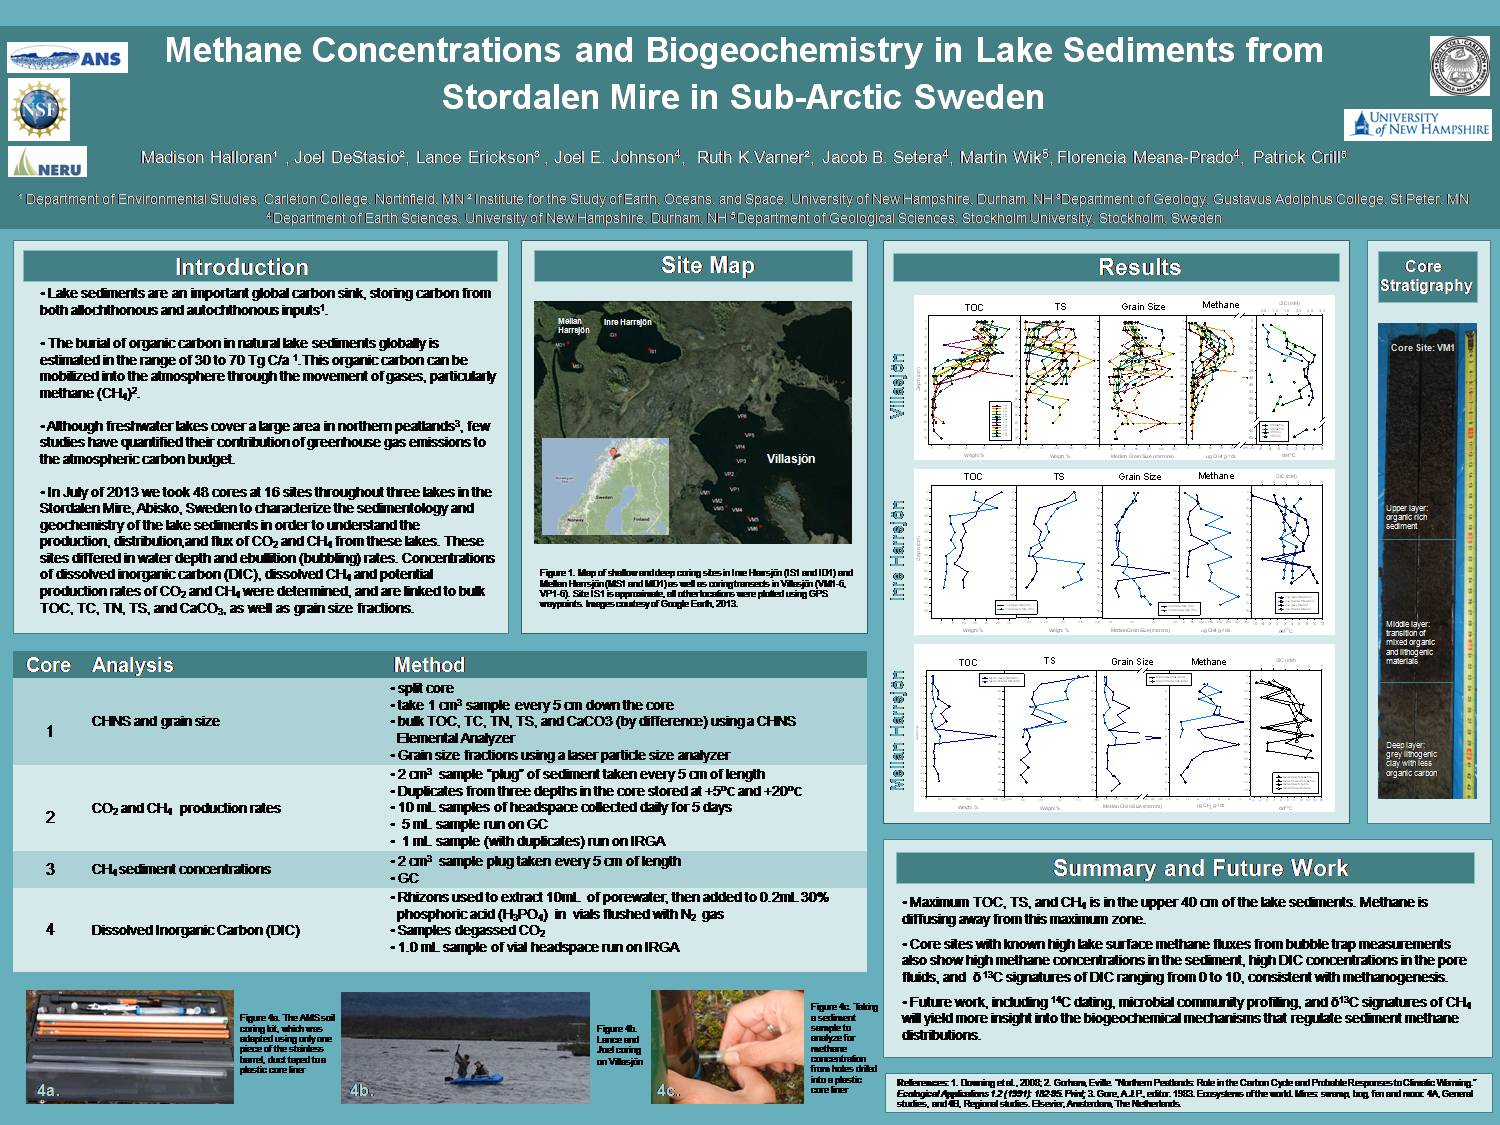 Methane Concentrations And Biogeochemistry In Lake Sediments From Stordalen Mire In Sub-Arctic Sweden (Final Draft) by halloram